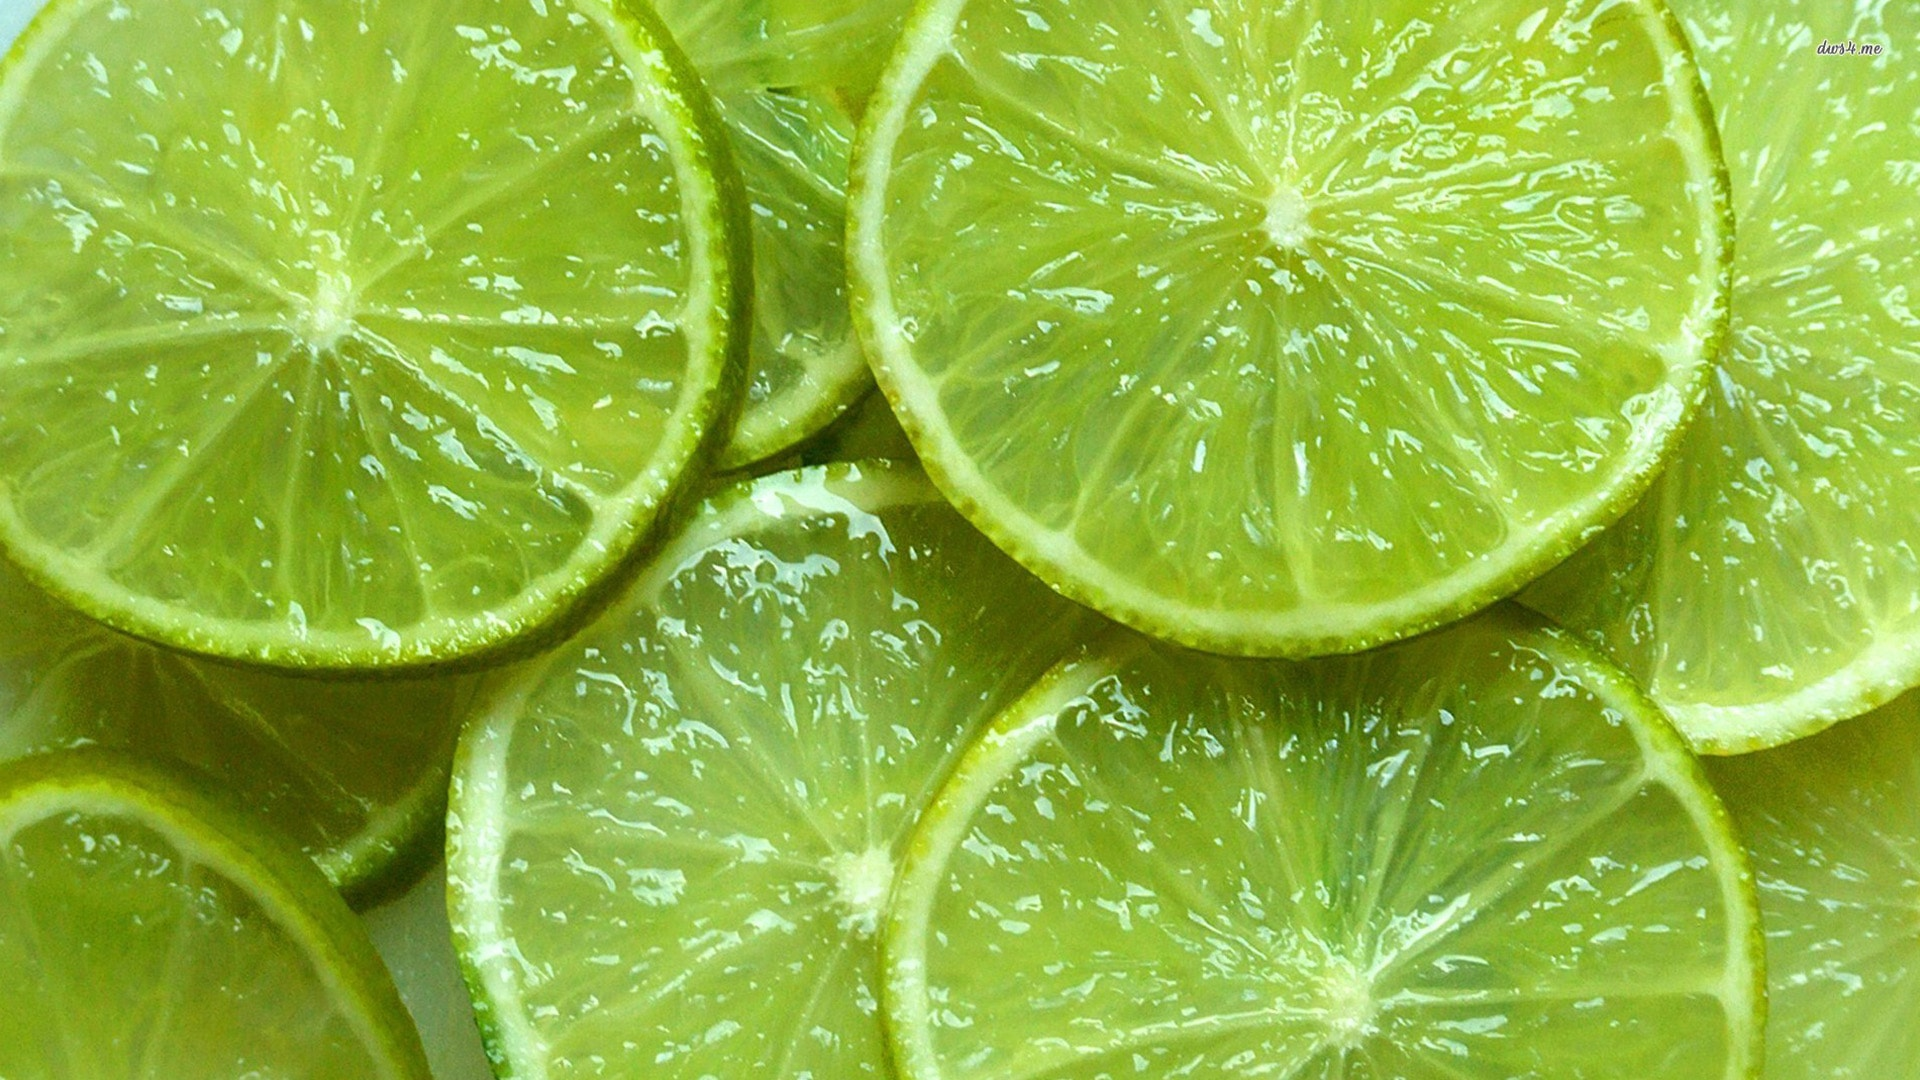 Lemon-HD-Desktop-wallpaper-wpc9007058